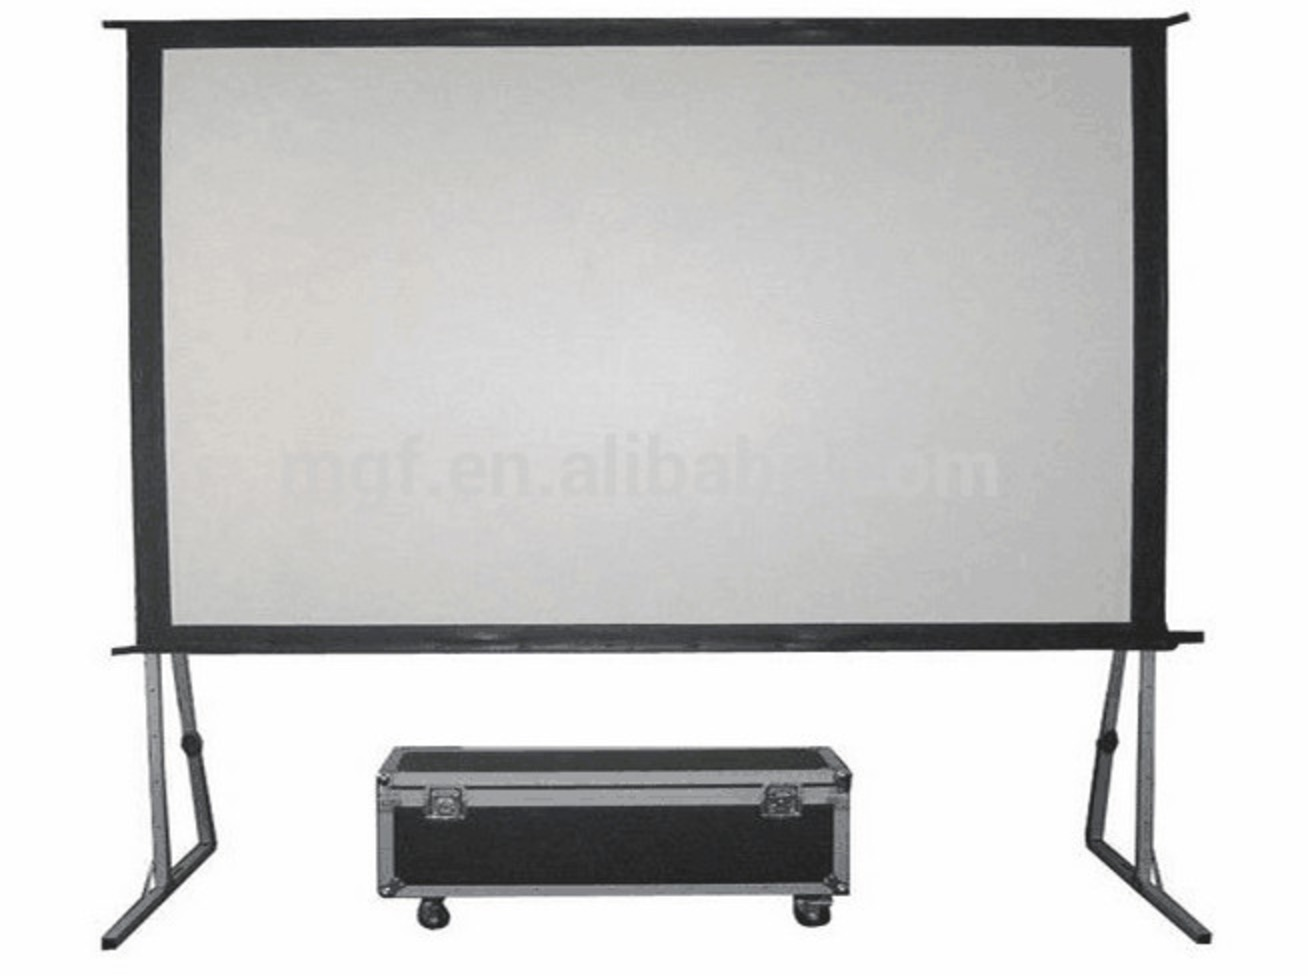 3.66M Front Projection Screen